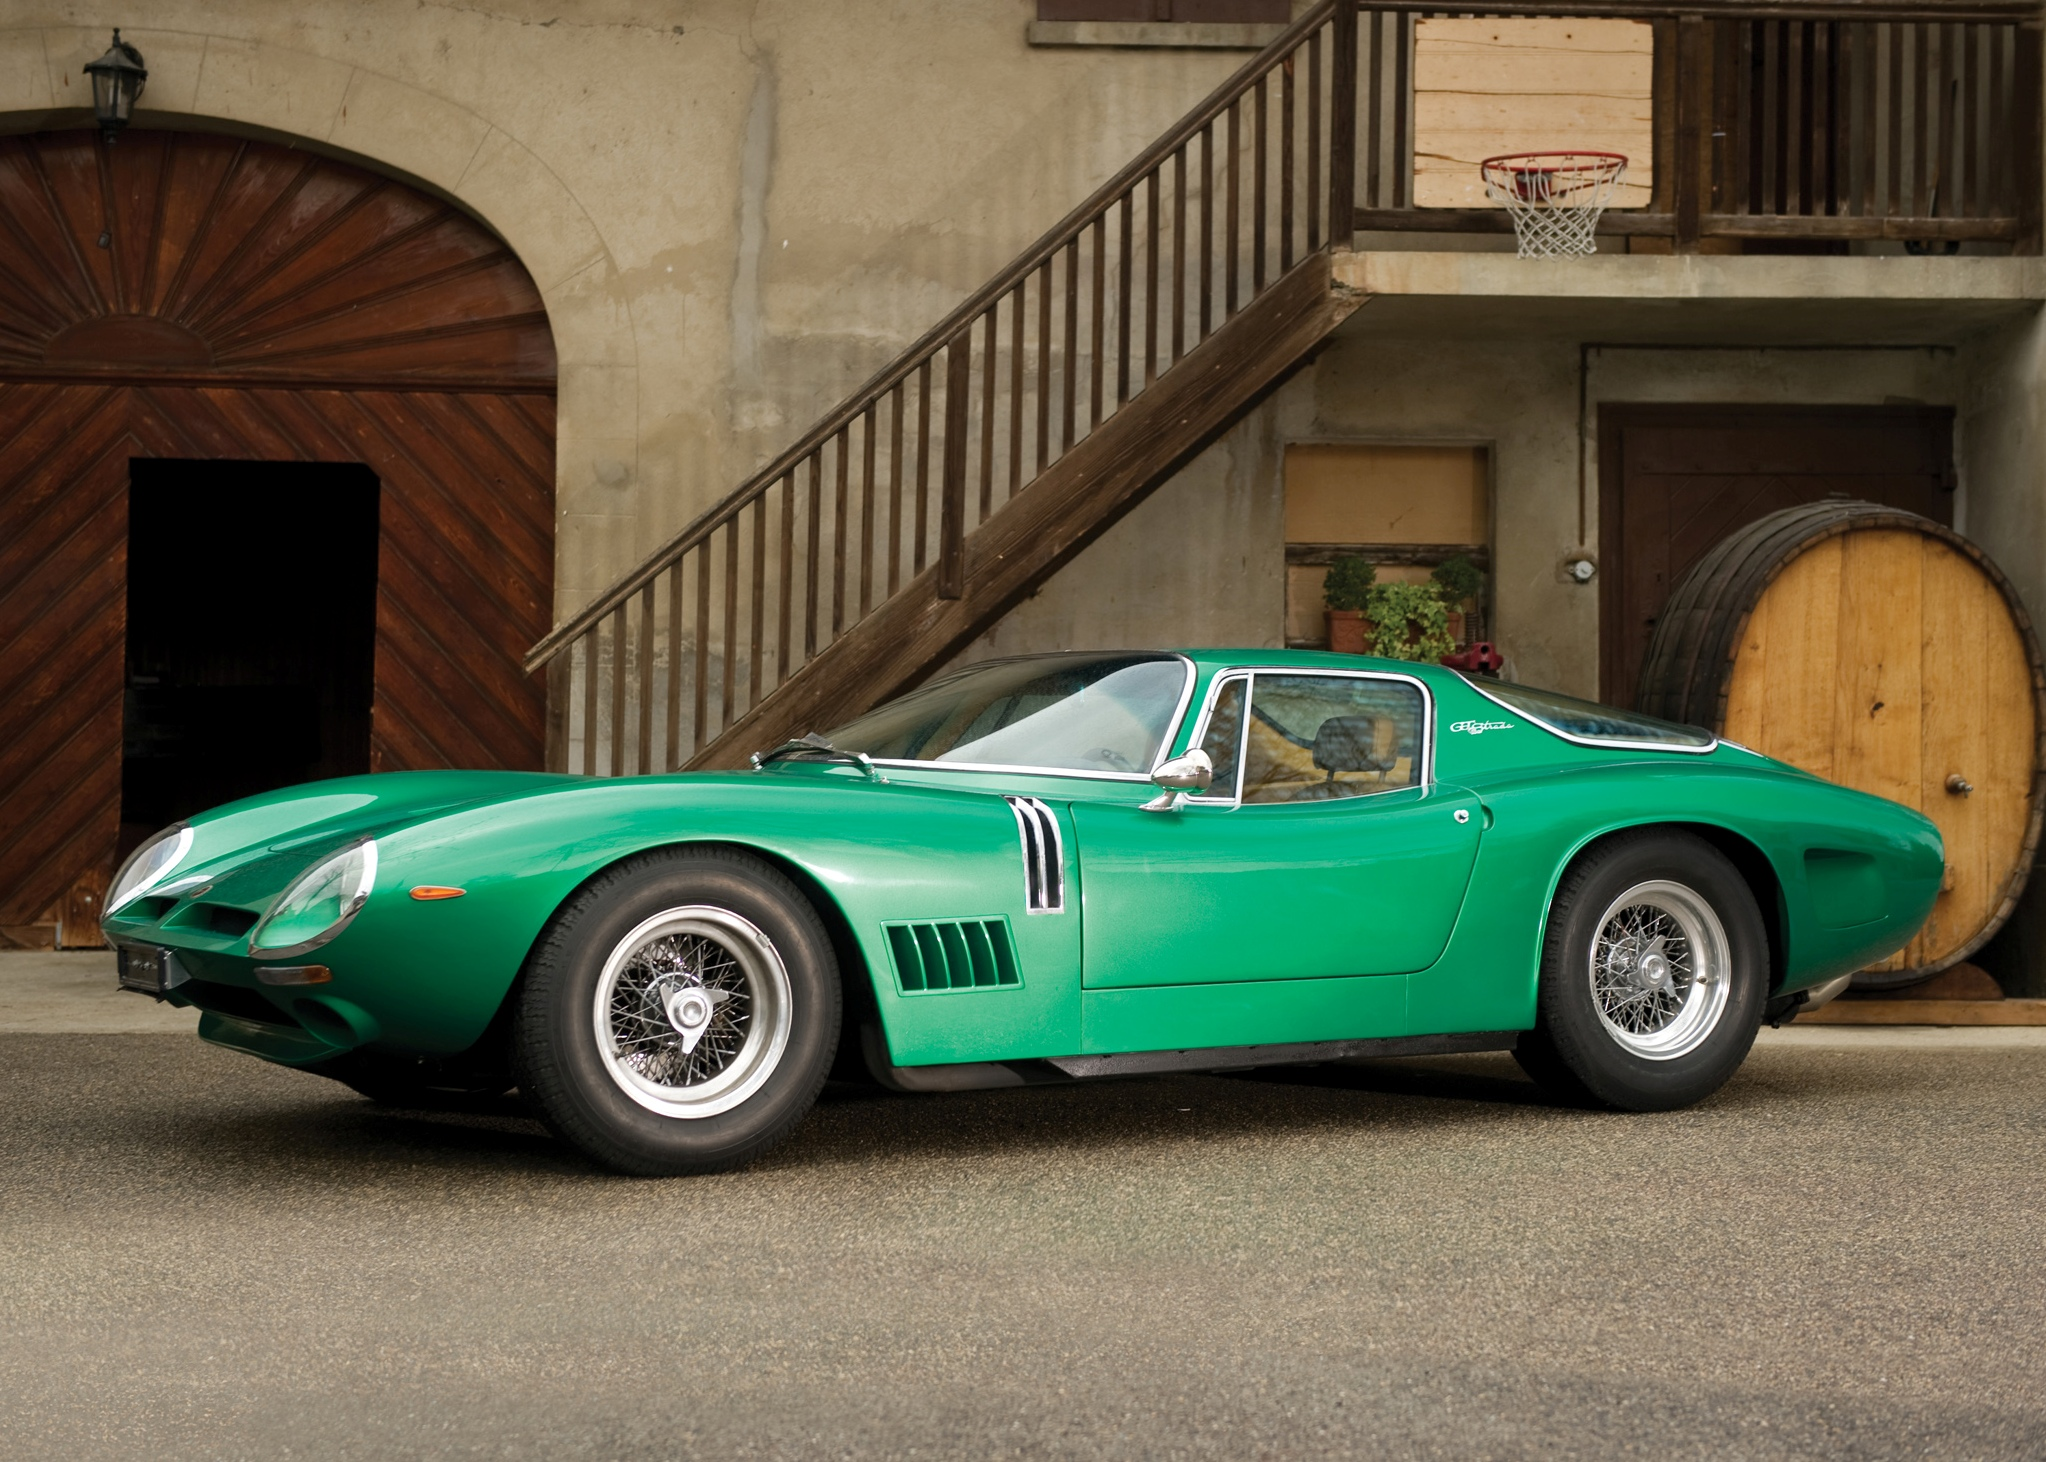 My top 10 sports cars ...